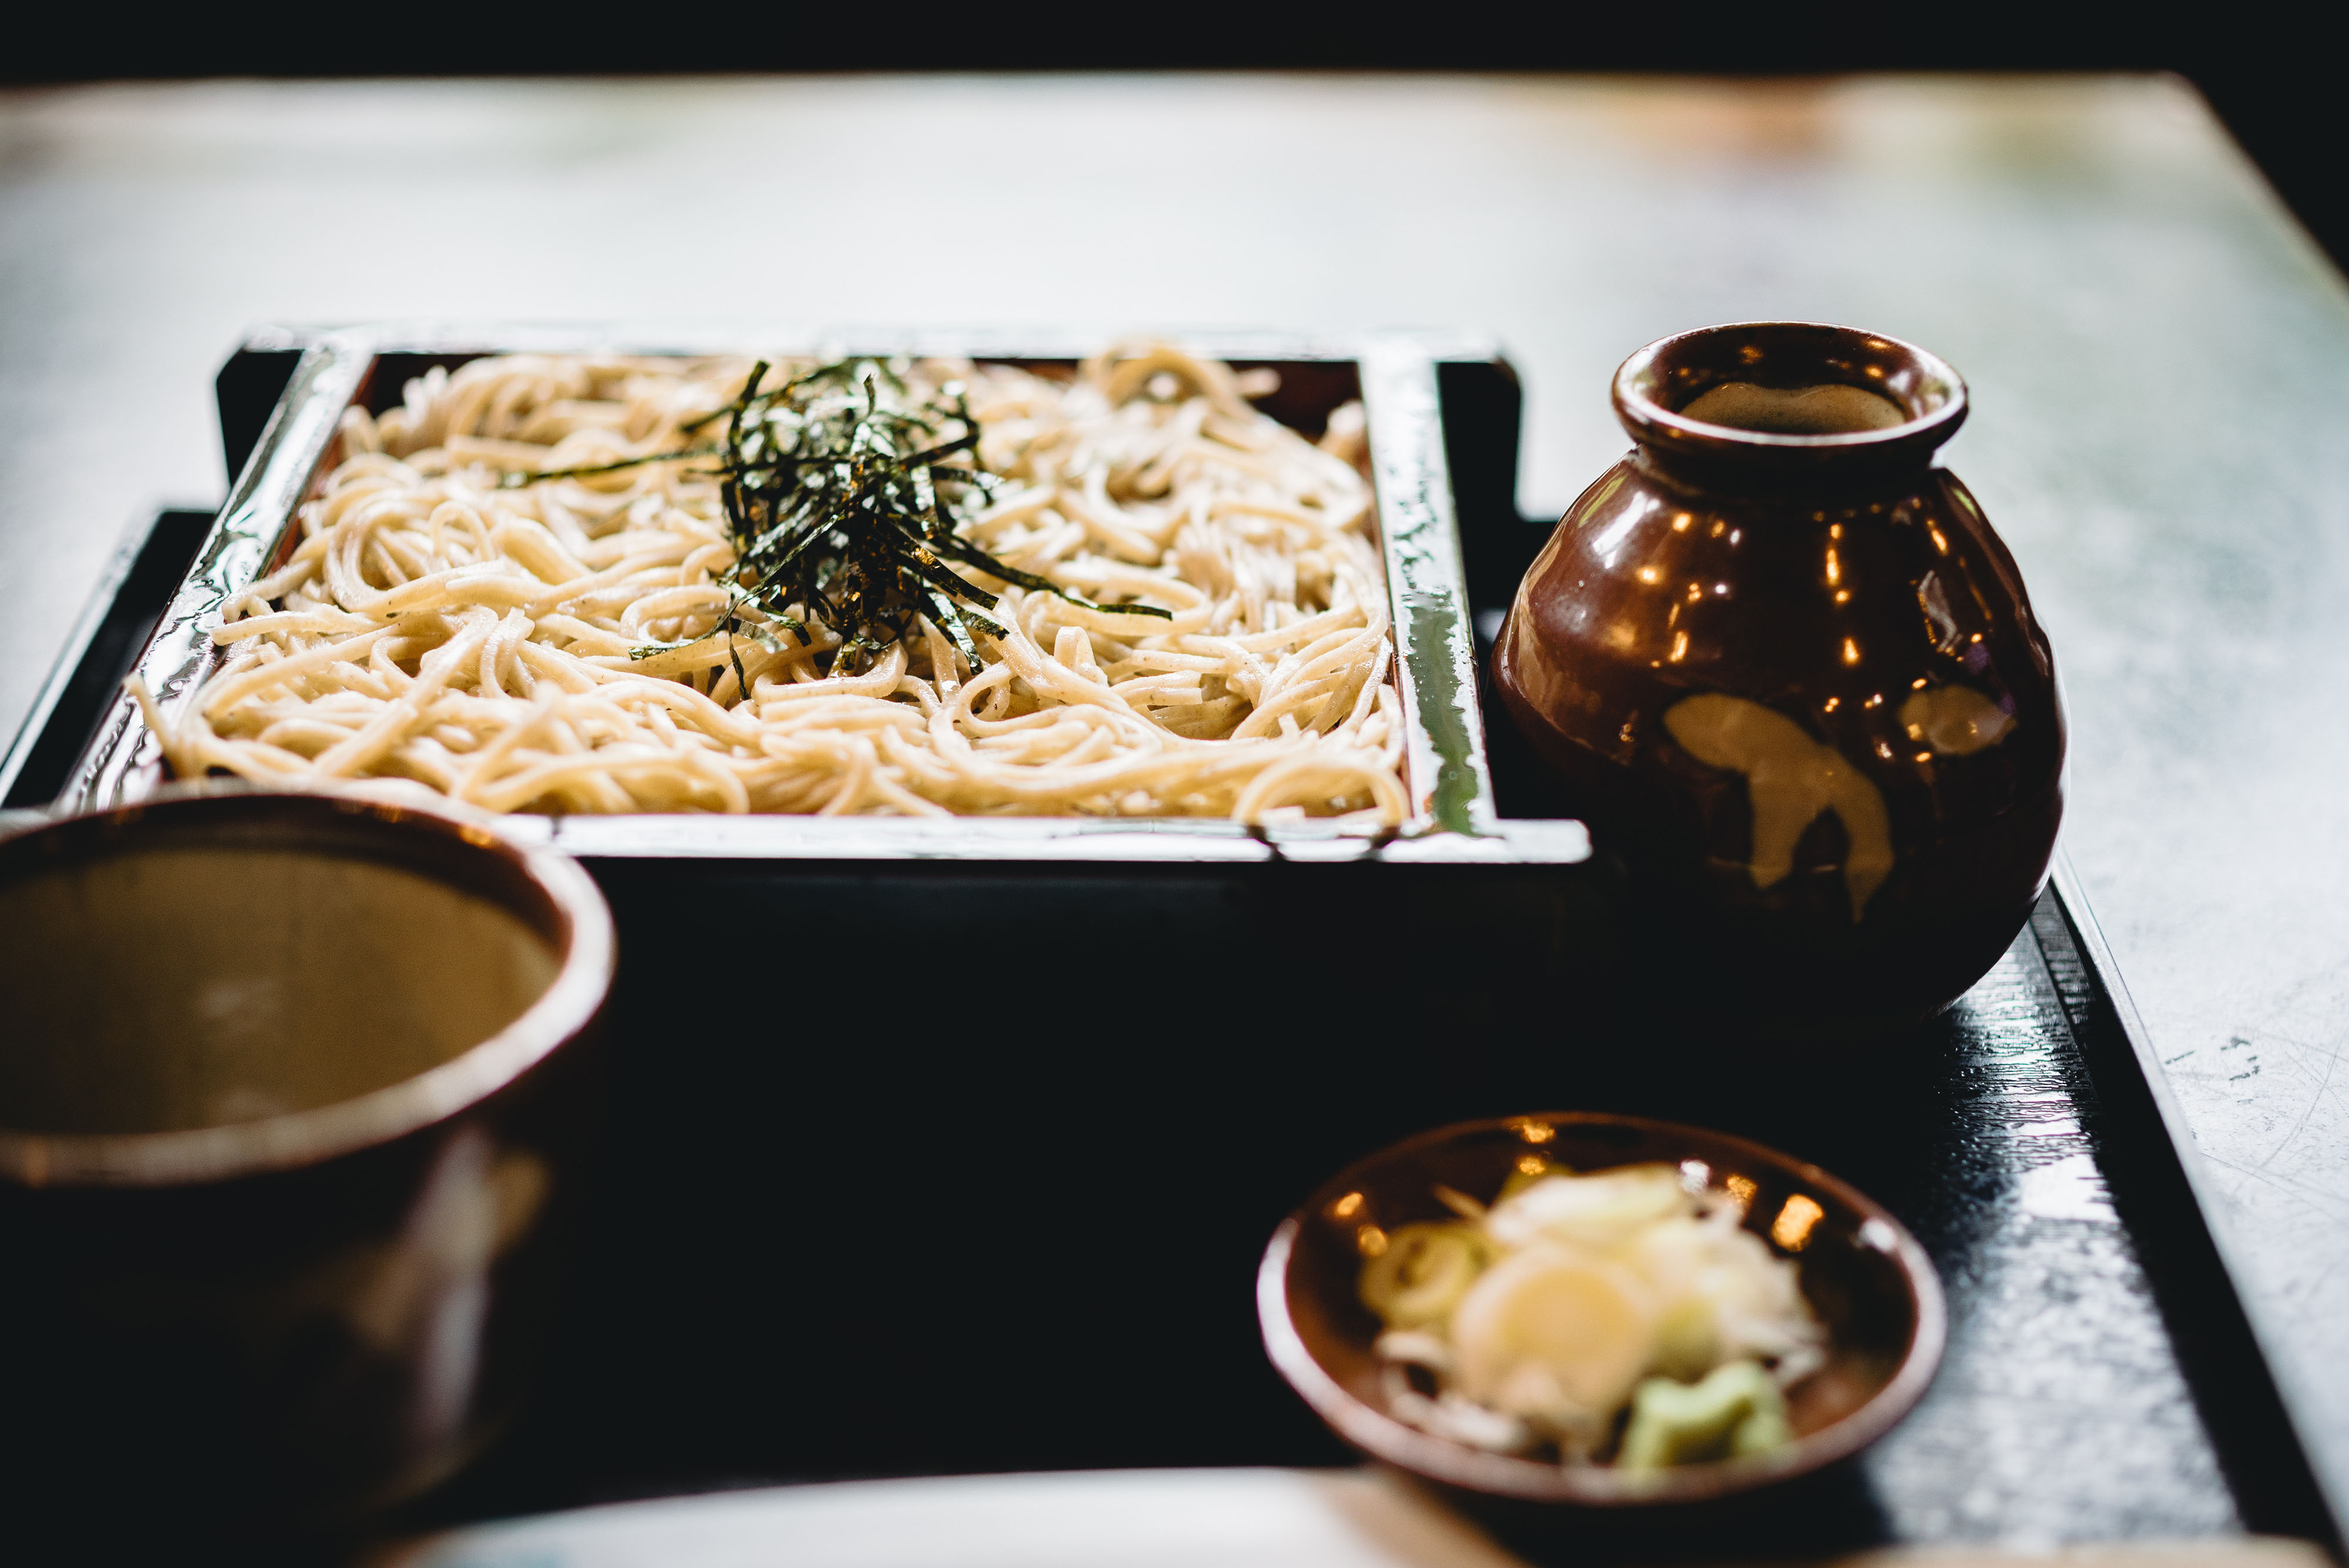 Soba noodles in a rectangle dish with a bottle of sake